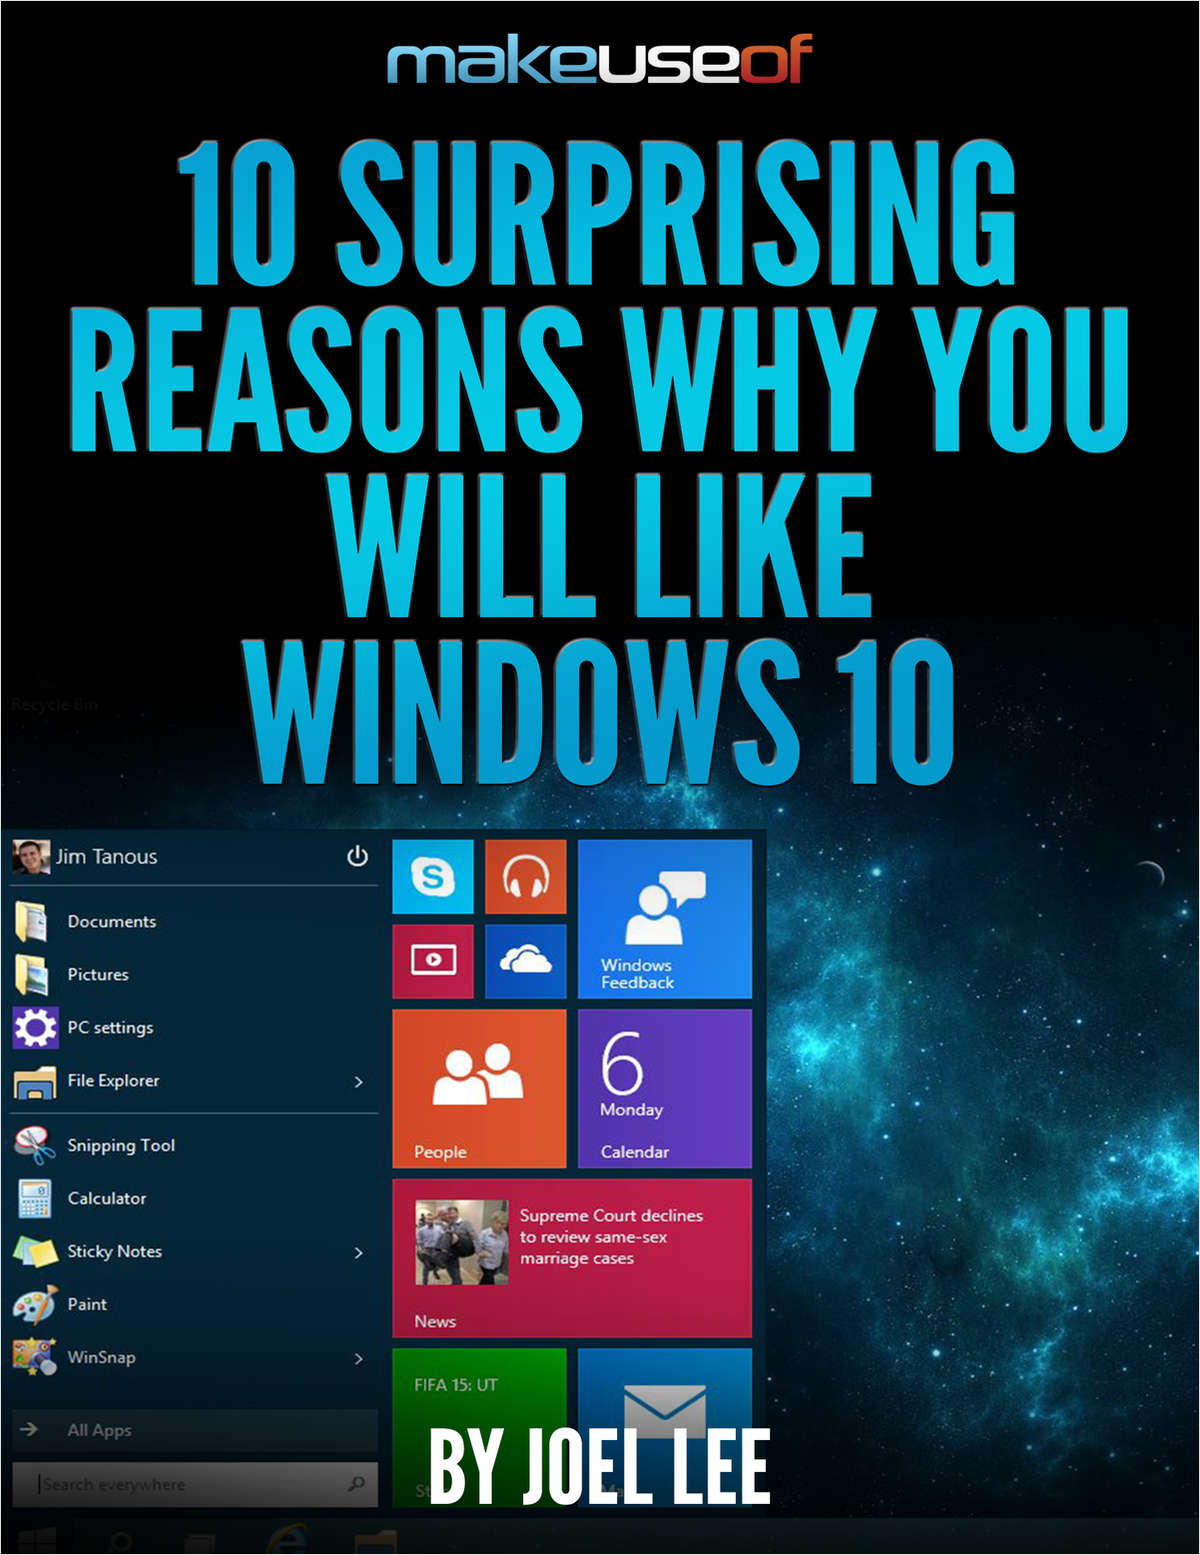 10 Surprising Reasons Why You Will Like Windows 10